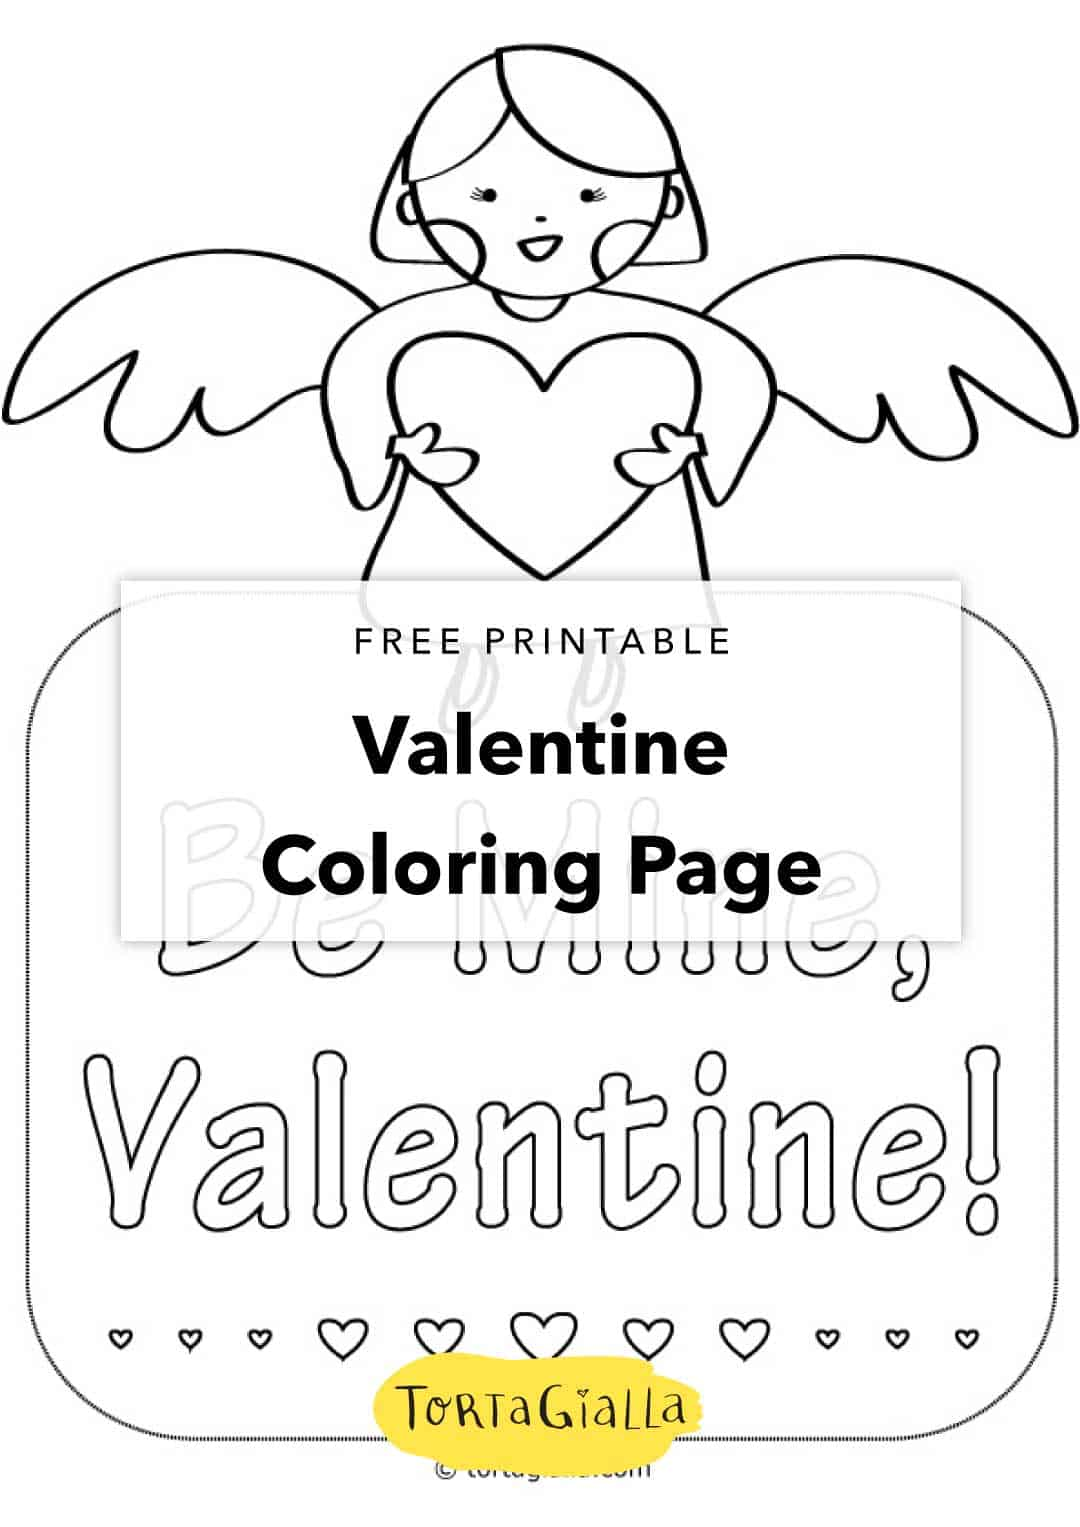 Free Printable - Valentine Coloring Page - My Valentine Coloring ...